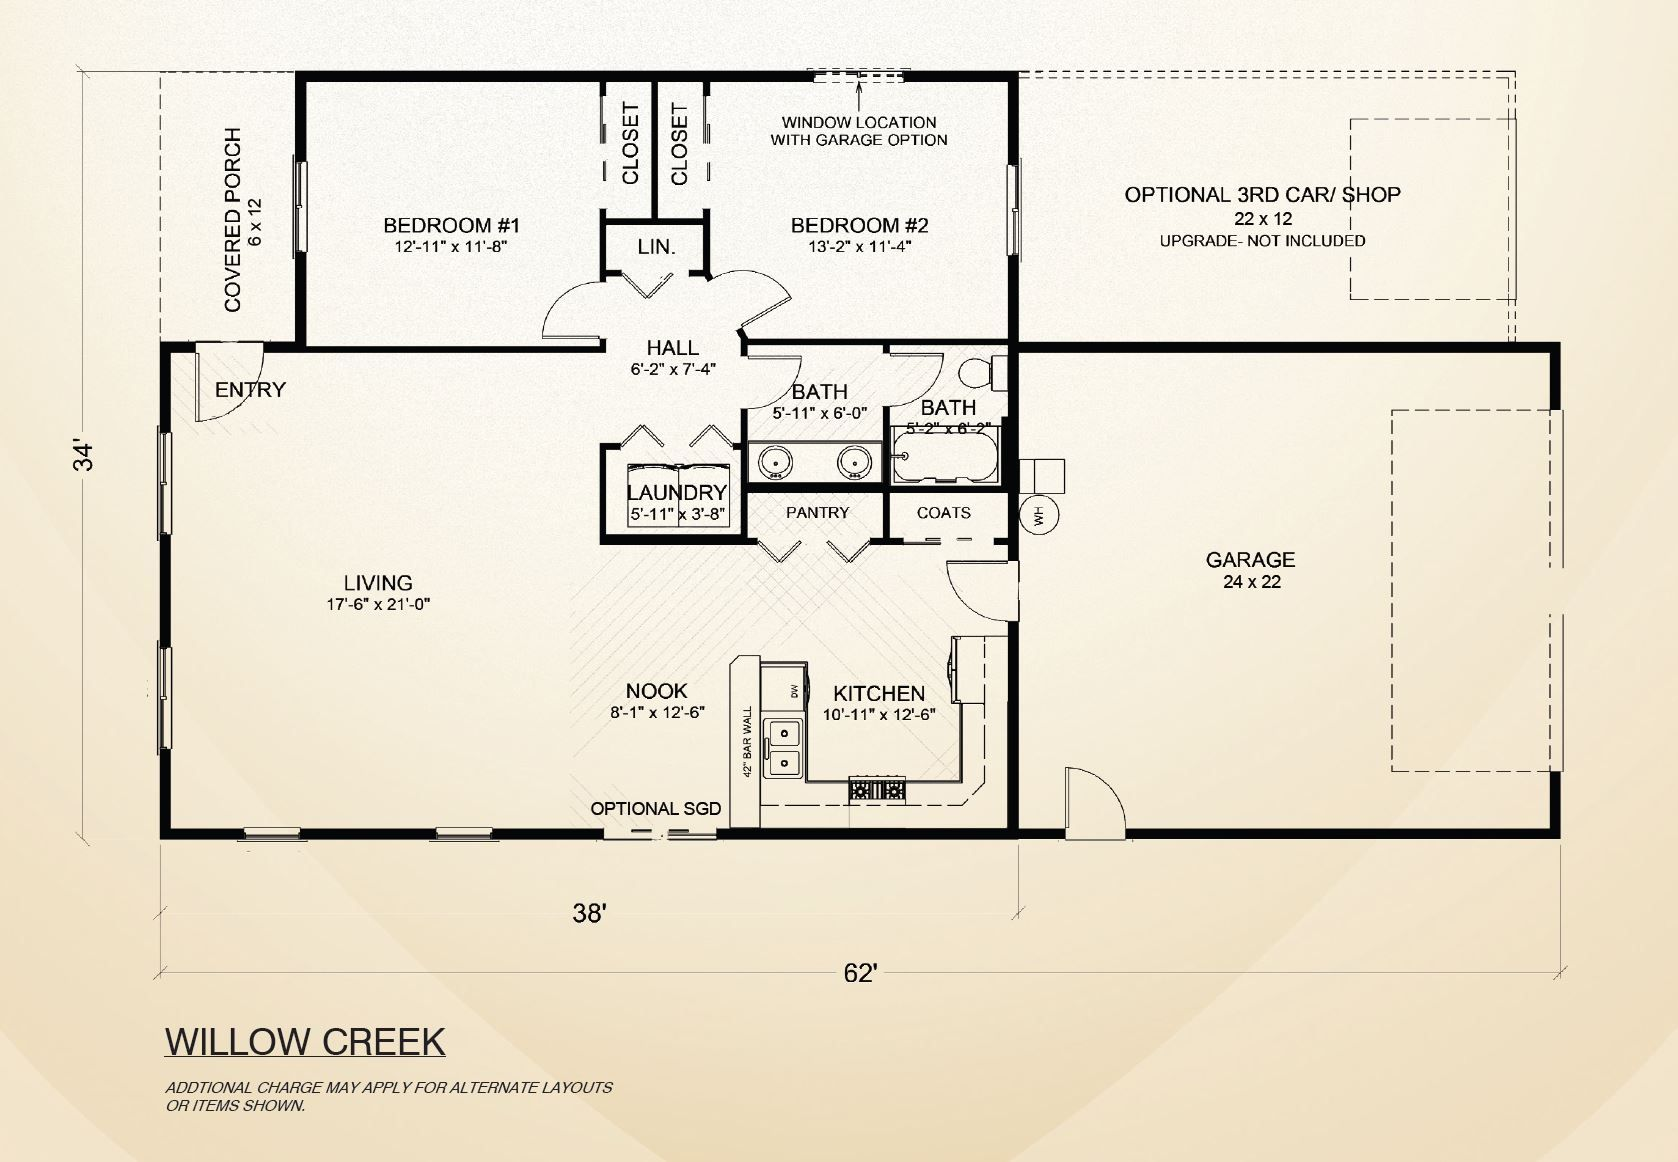 willow creek floor plan no scale jpg 1678a 1162 house plans